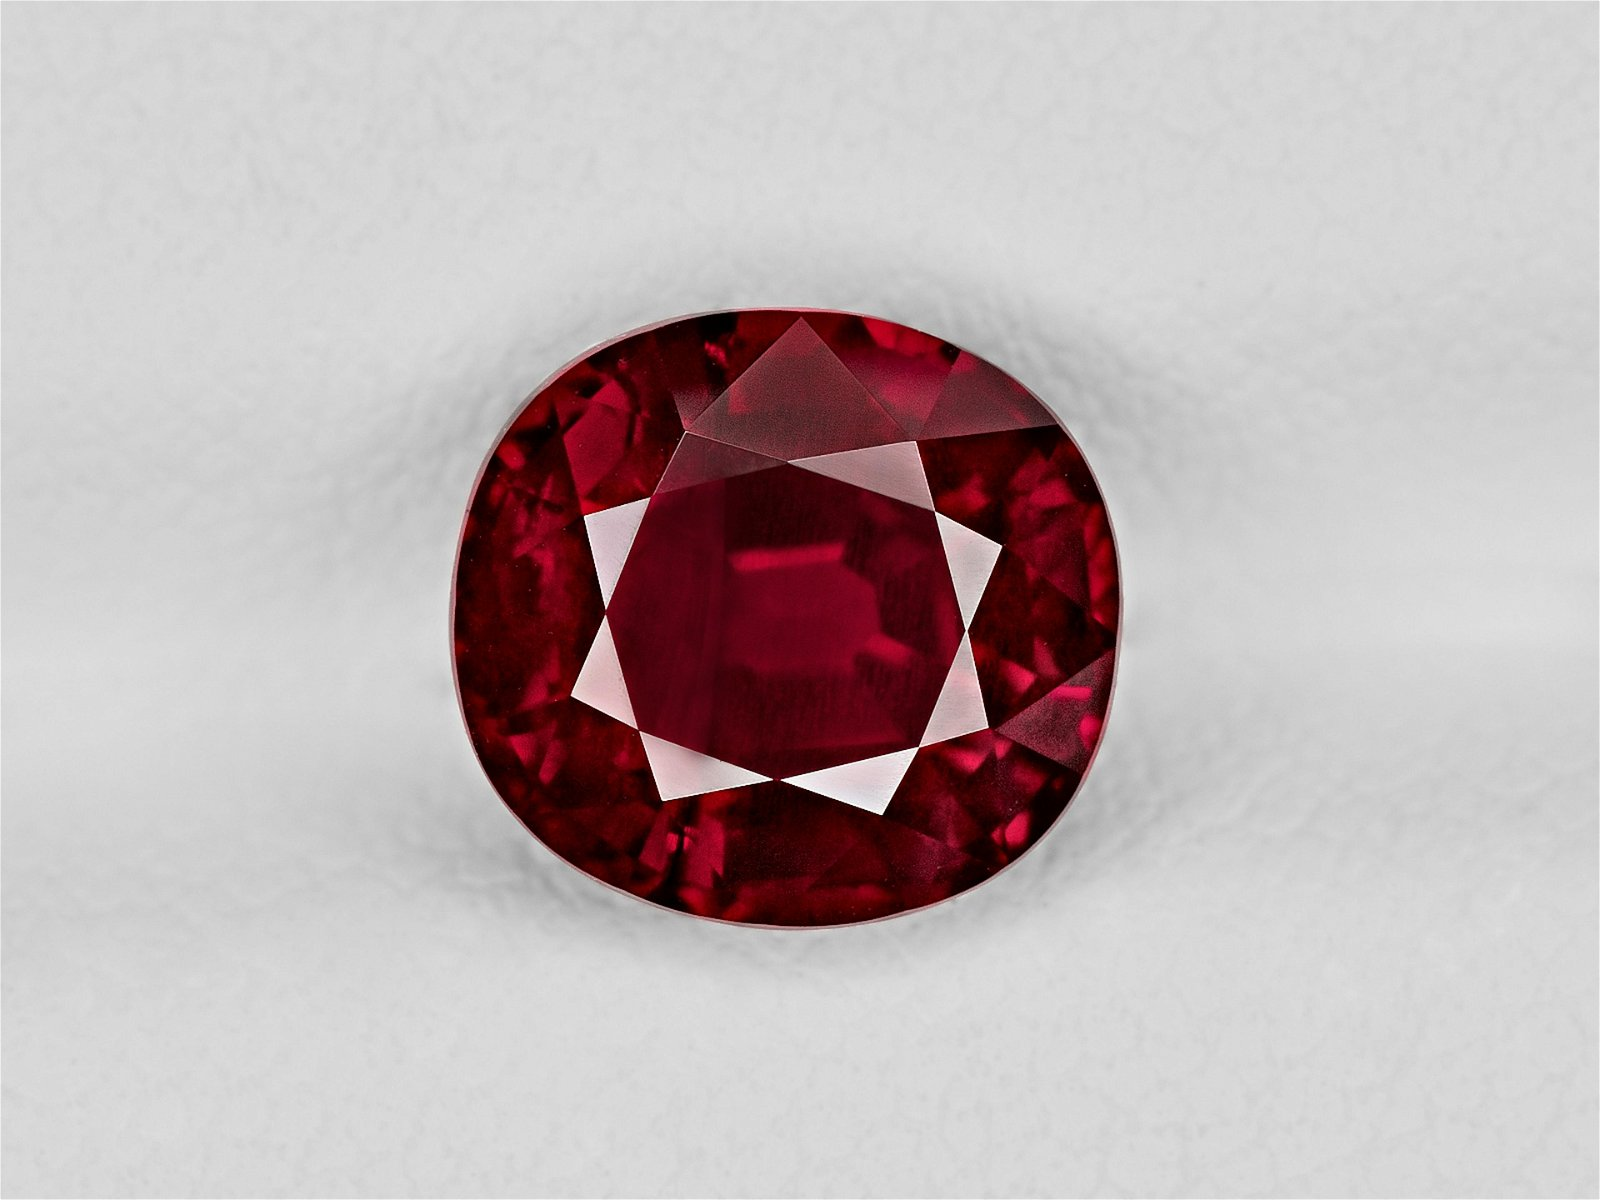 Ruby, 3.08ct, Mined in Mozambique, Certified by GRS